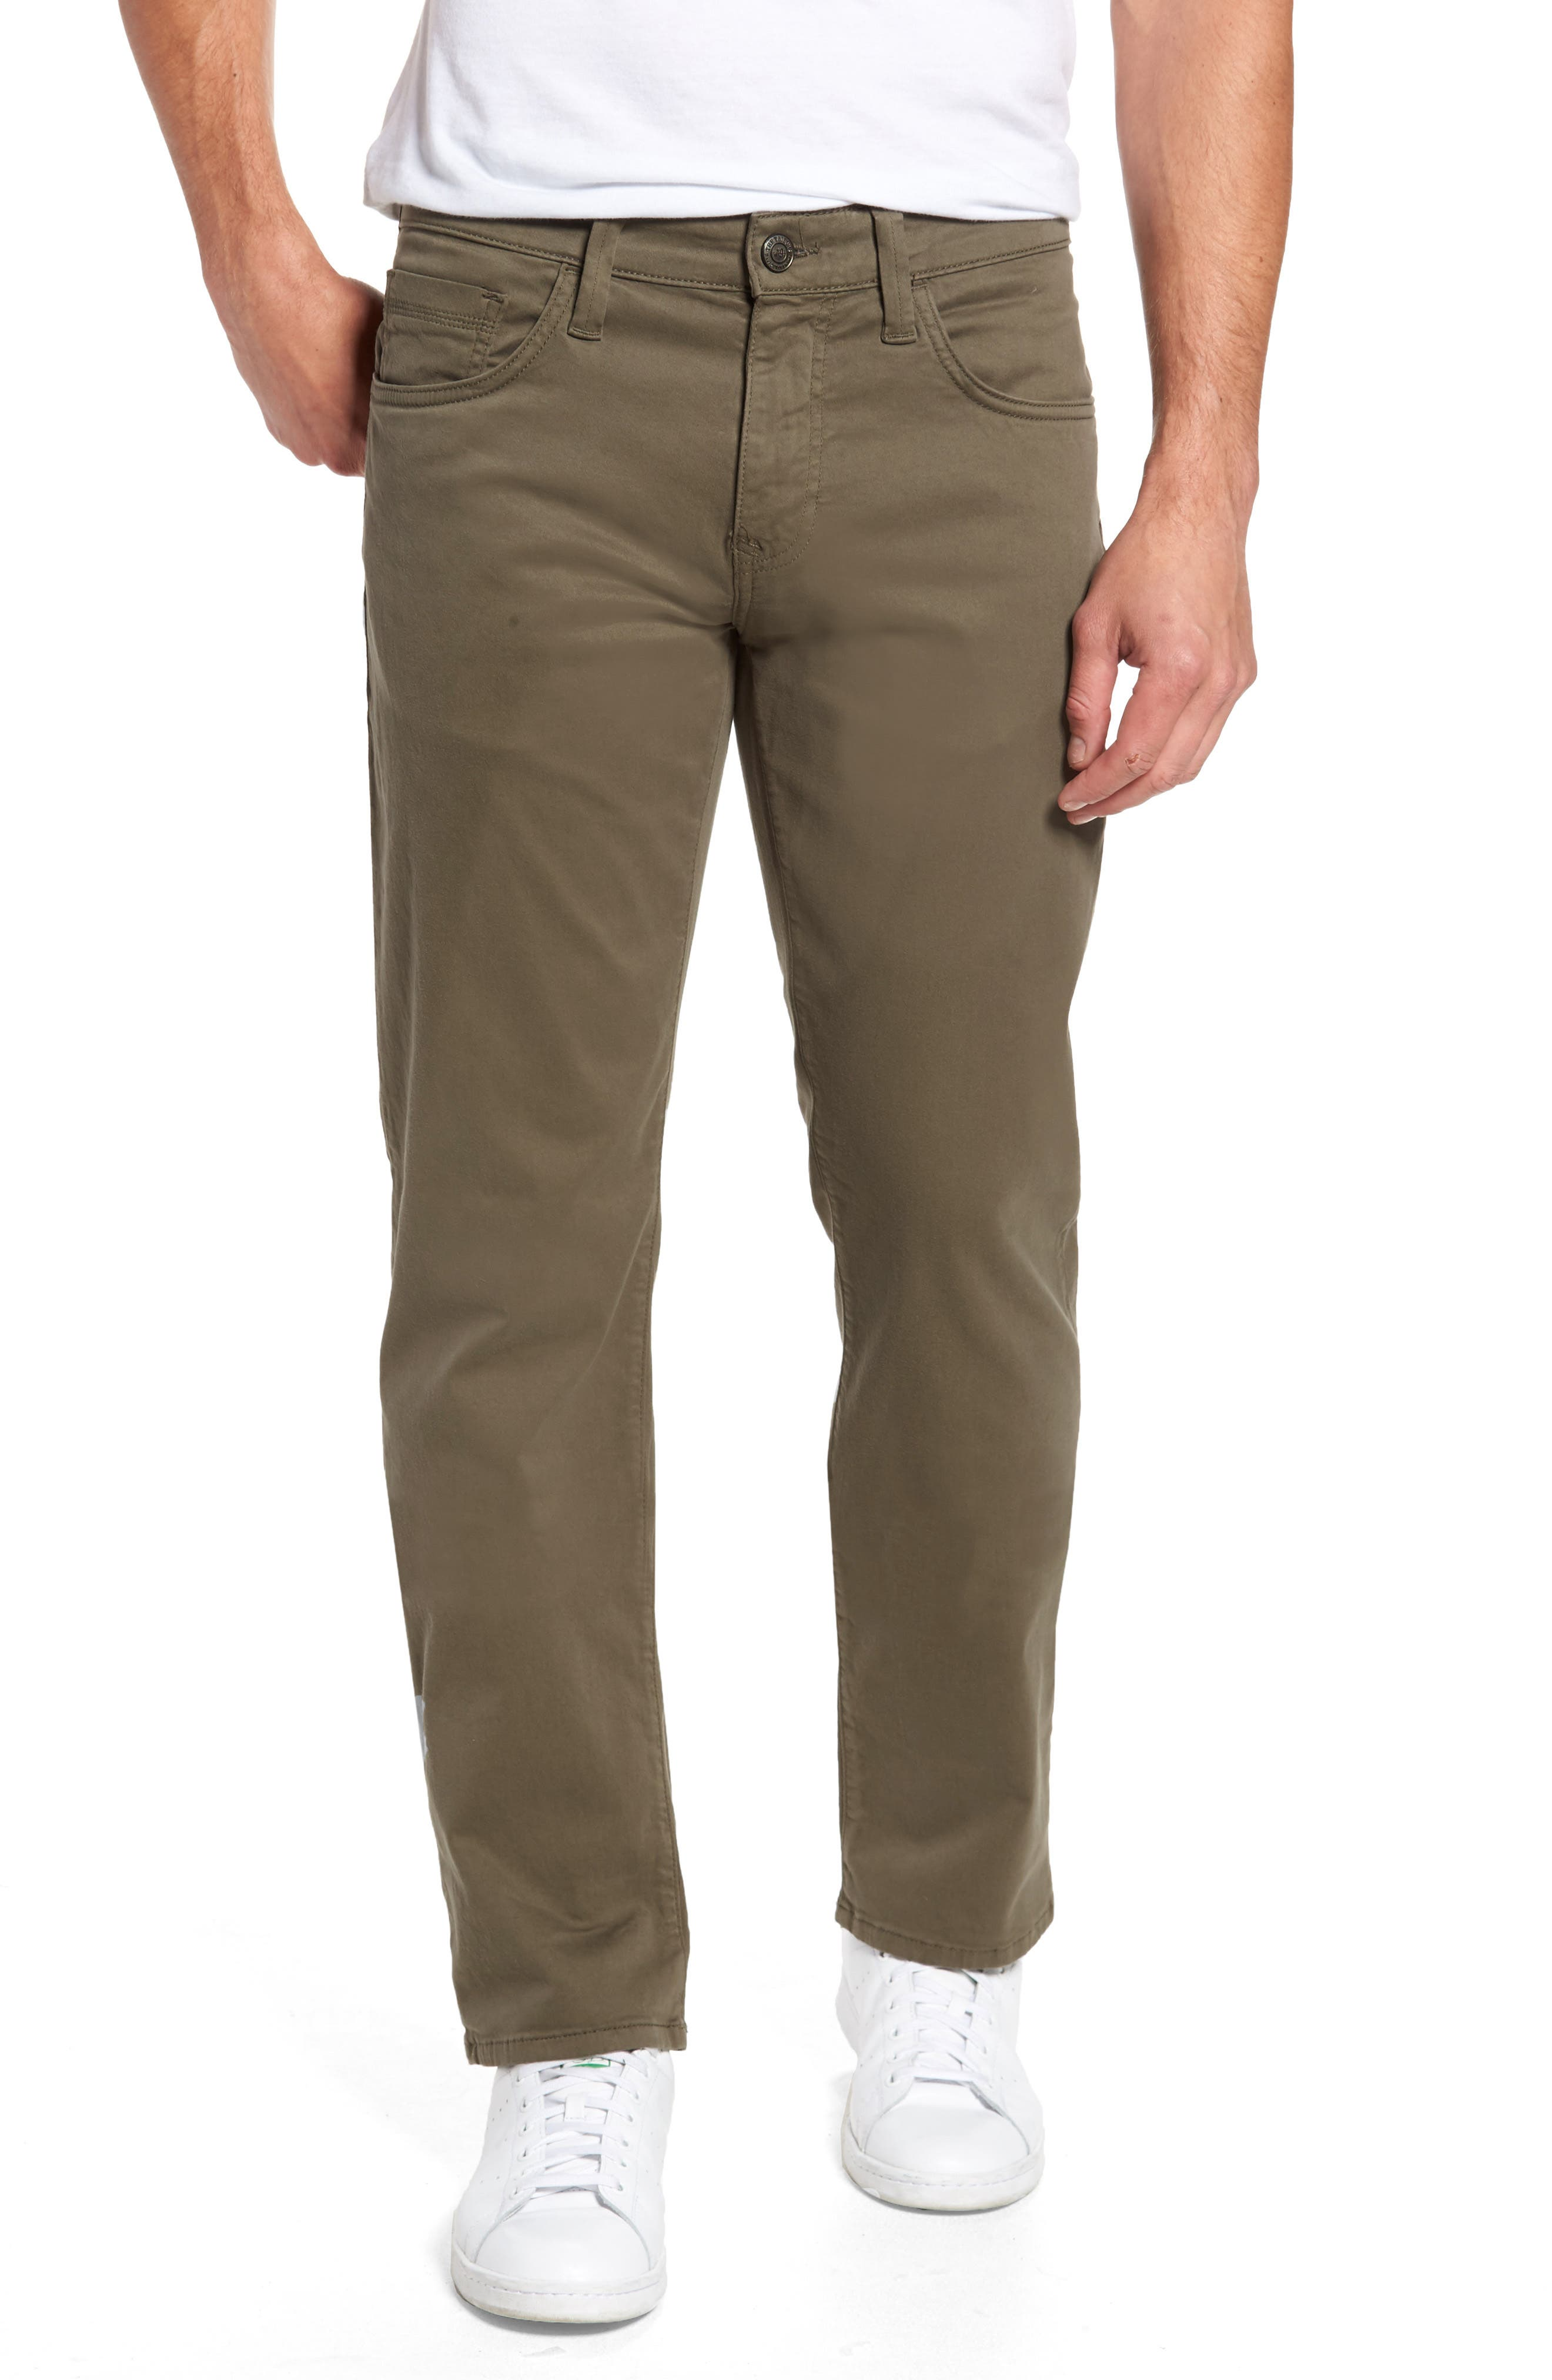 Zach Straight Fit Twill Pants,                             Main thumbnail 1, color,                             DUSTY OLIVE TWILL